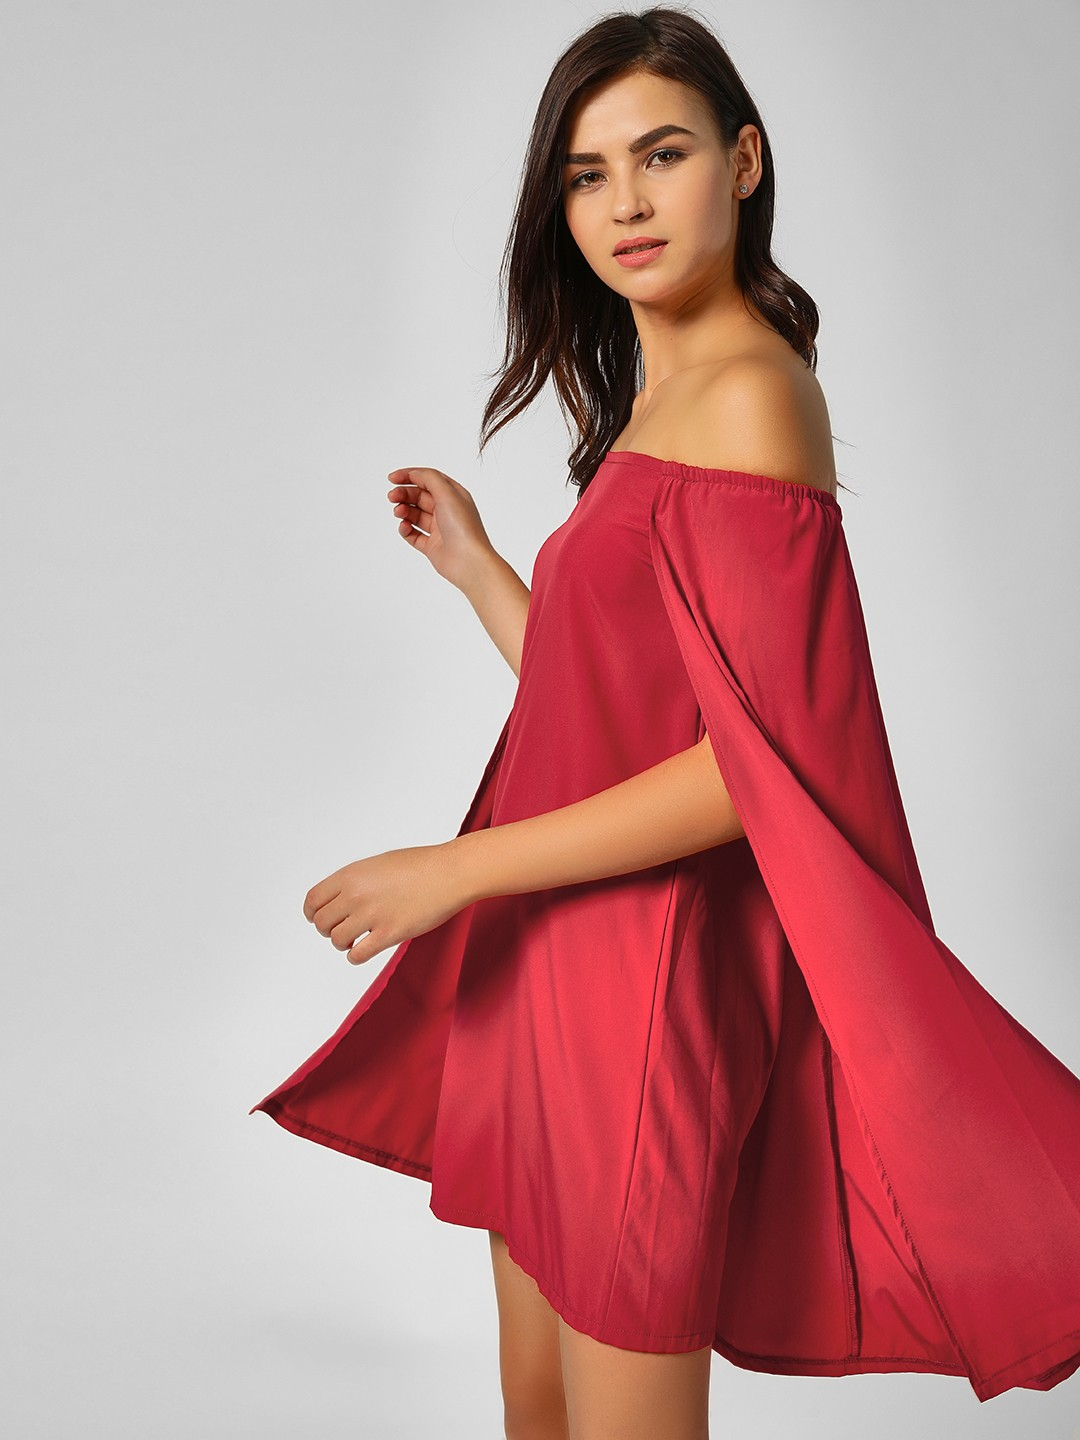 Lola May Red Off Shoulder Cape Dress 1